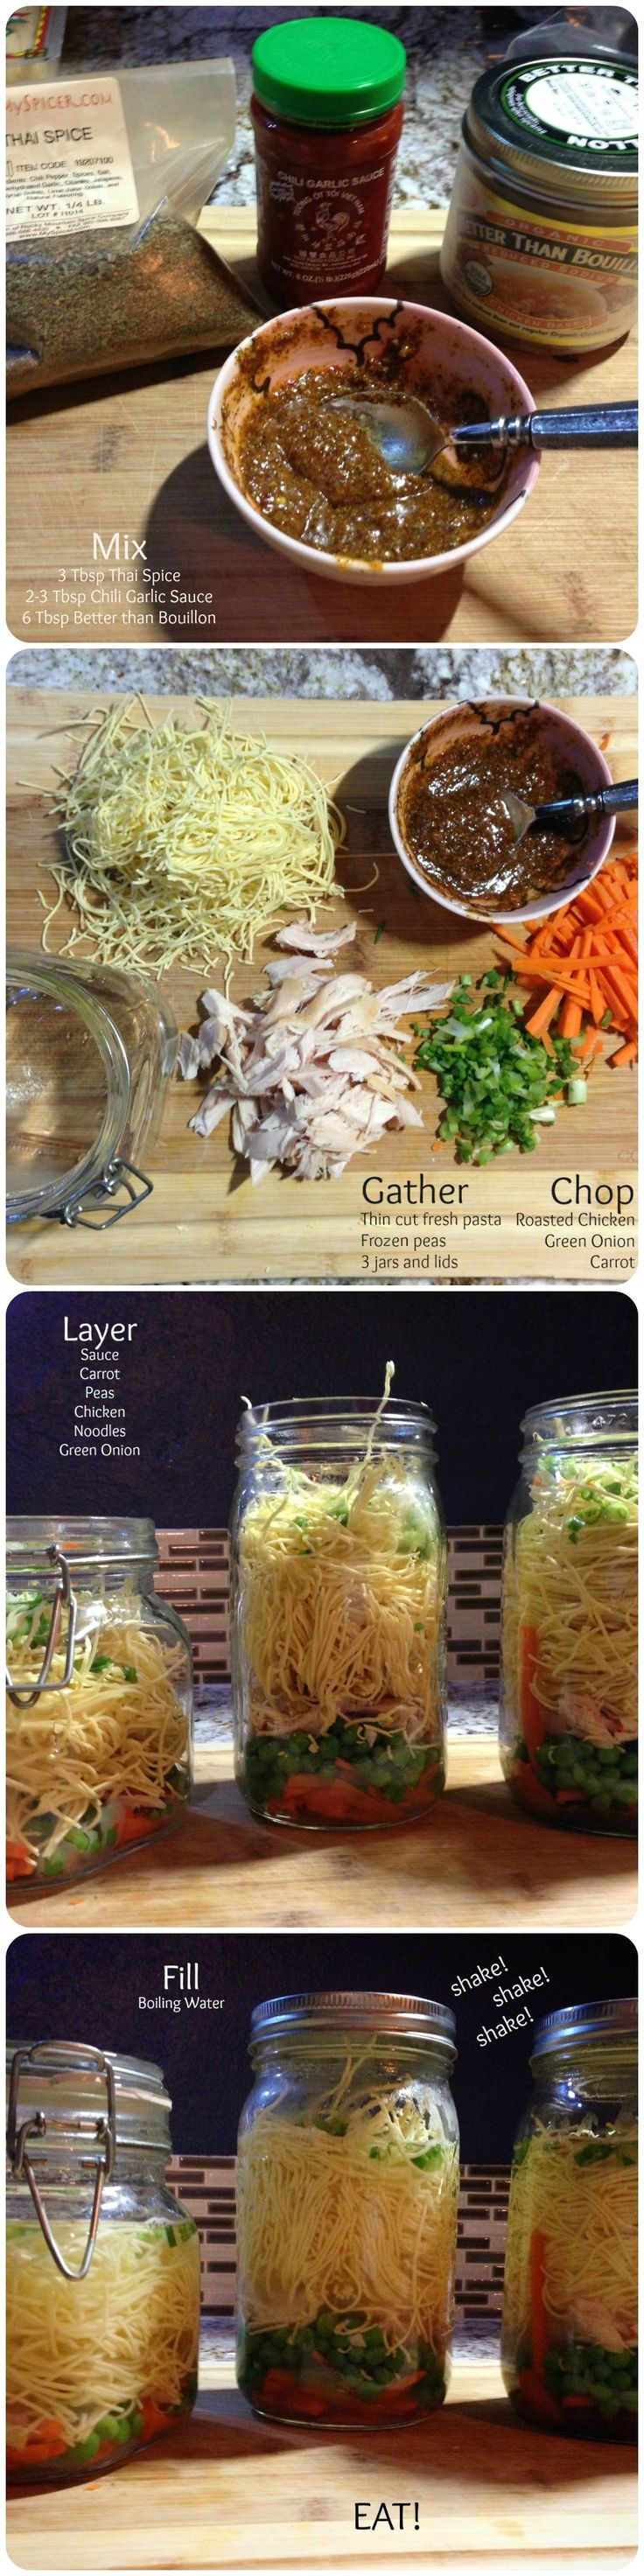 DIY soup in a jar, DIY ramen, DIY cup of noodles, easy dinners, great lunches, thesalvagebureau, http://thesalvagebureau.com/2014/12/12/kick-that-can-of-soup/